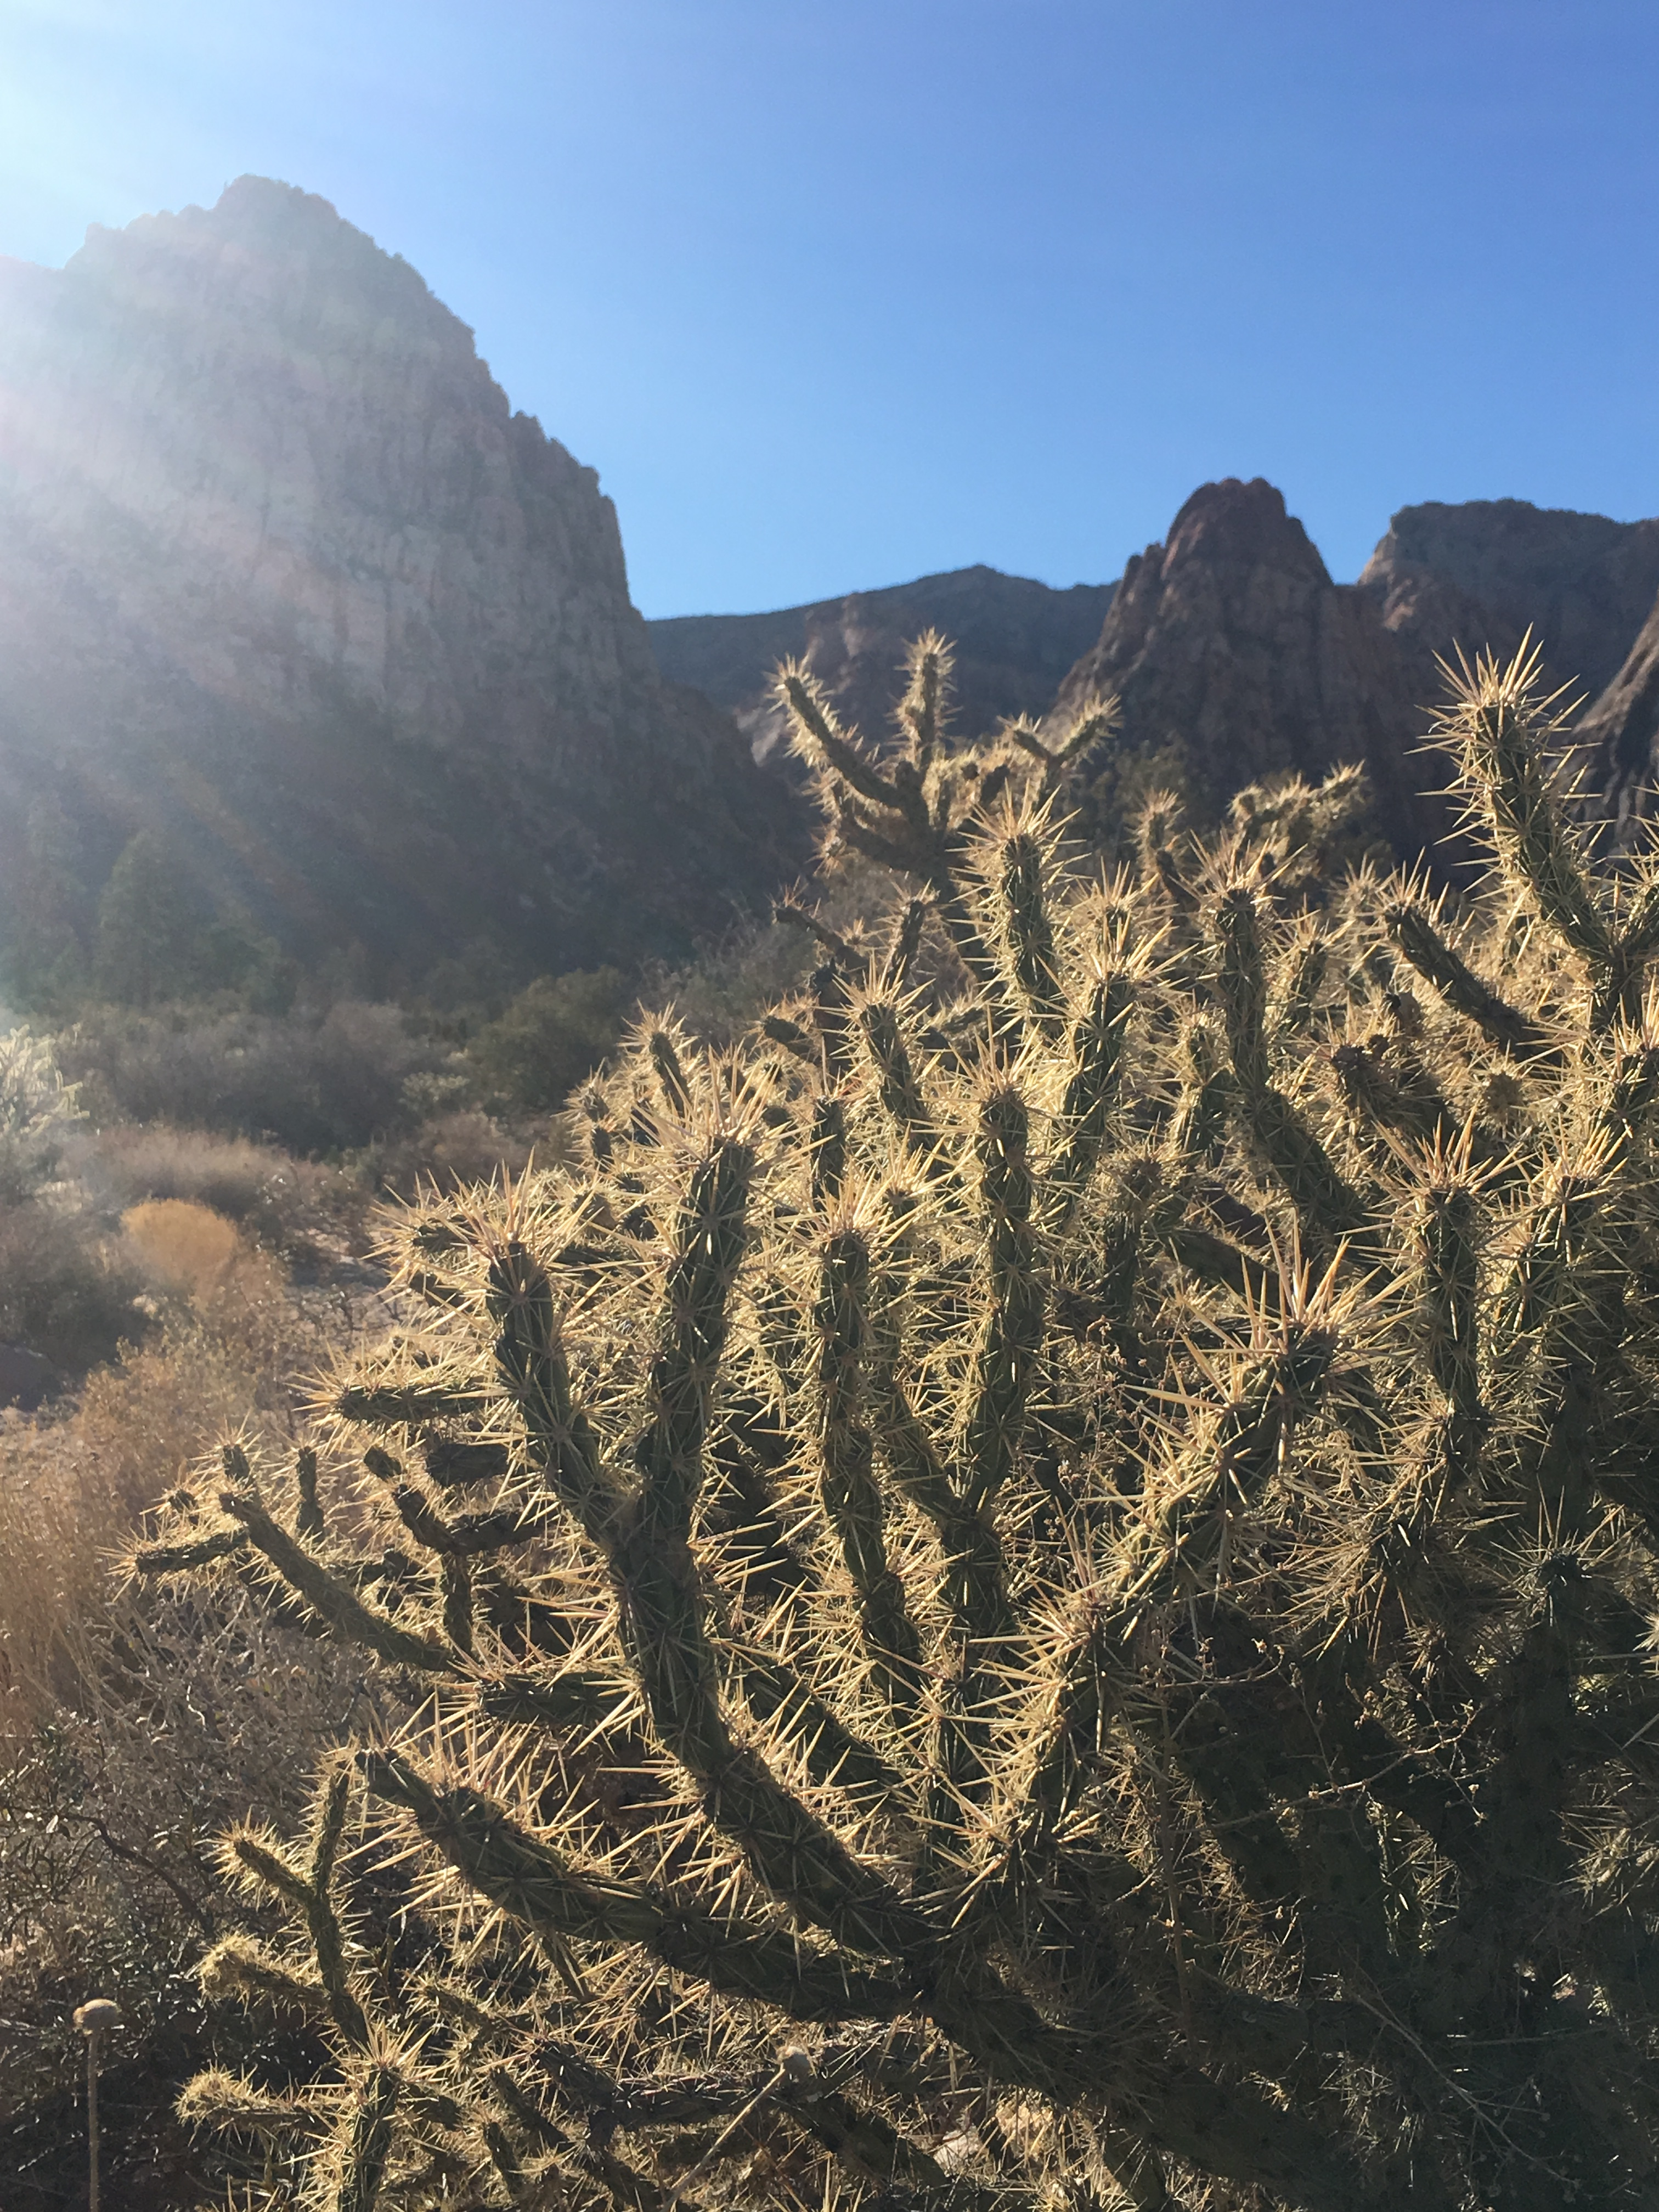 Cactus along the trail at Red Rock Canyon.